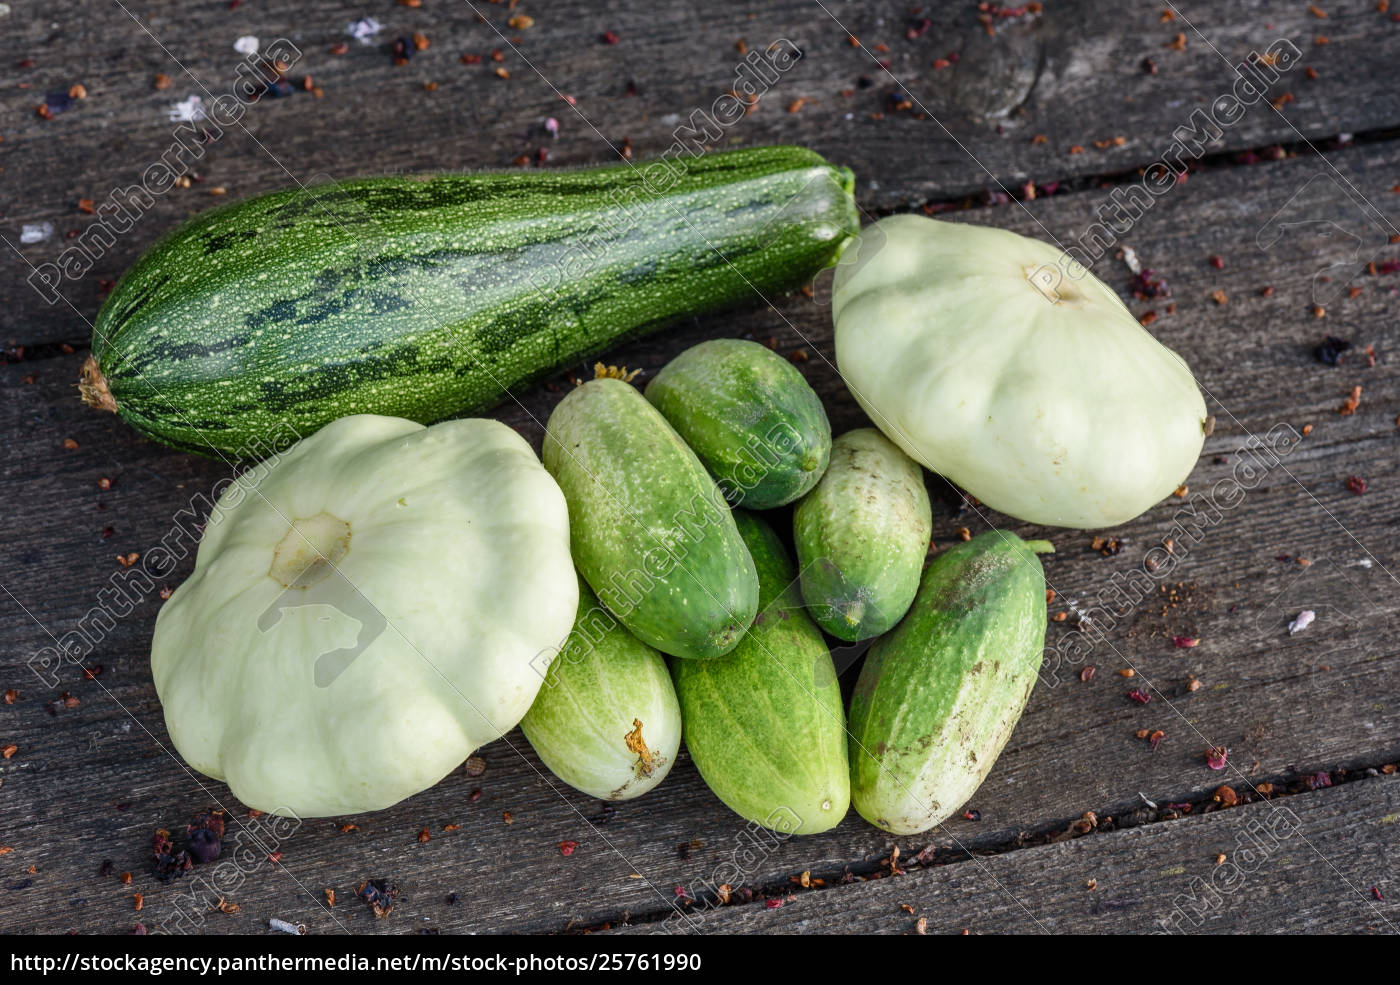 zucchini, , pattypan, squash, , cucumbers, harvested, from - 25761990